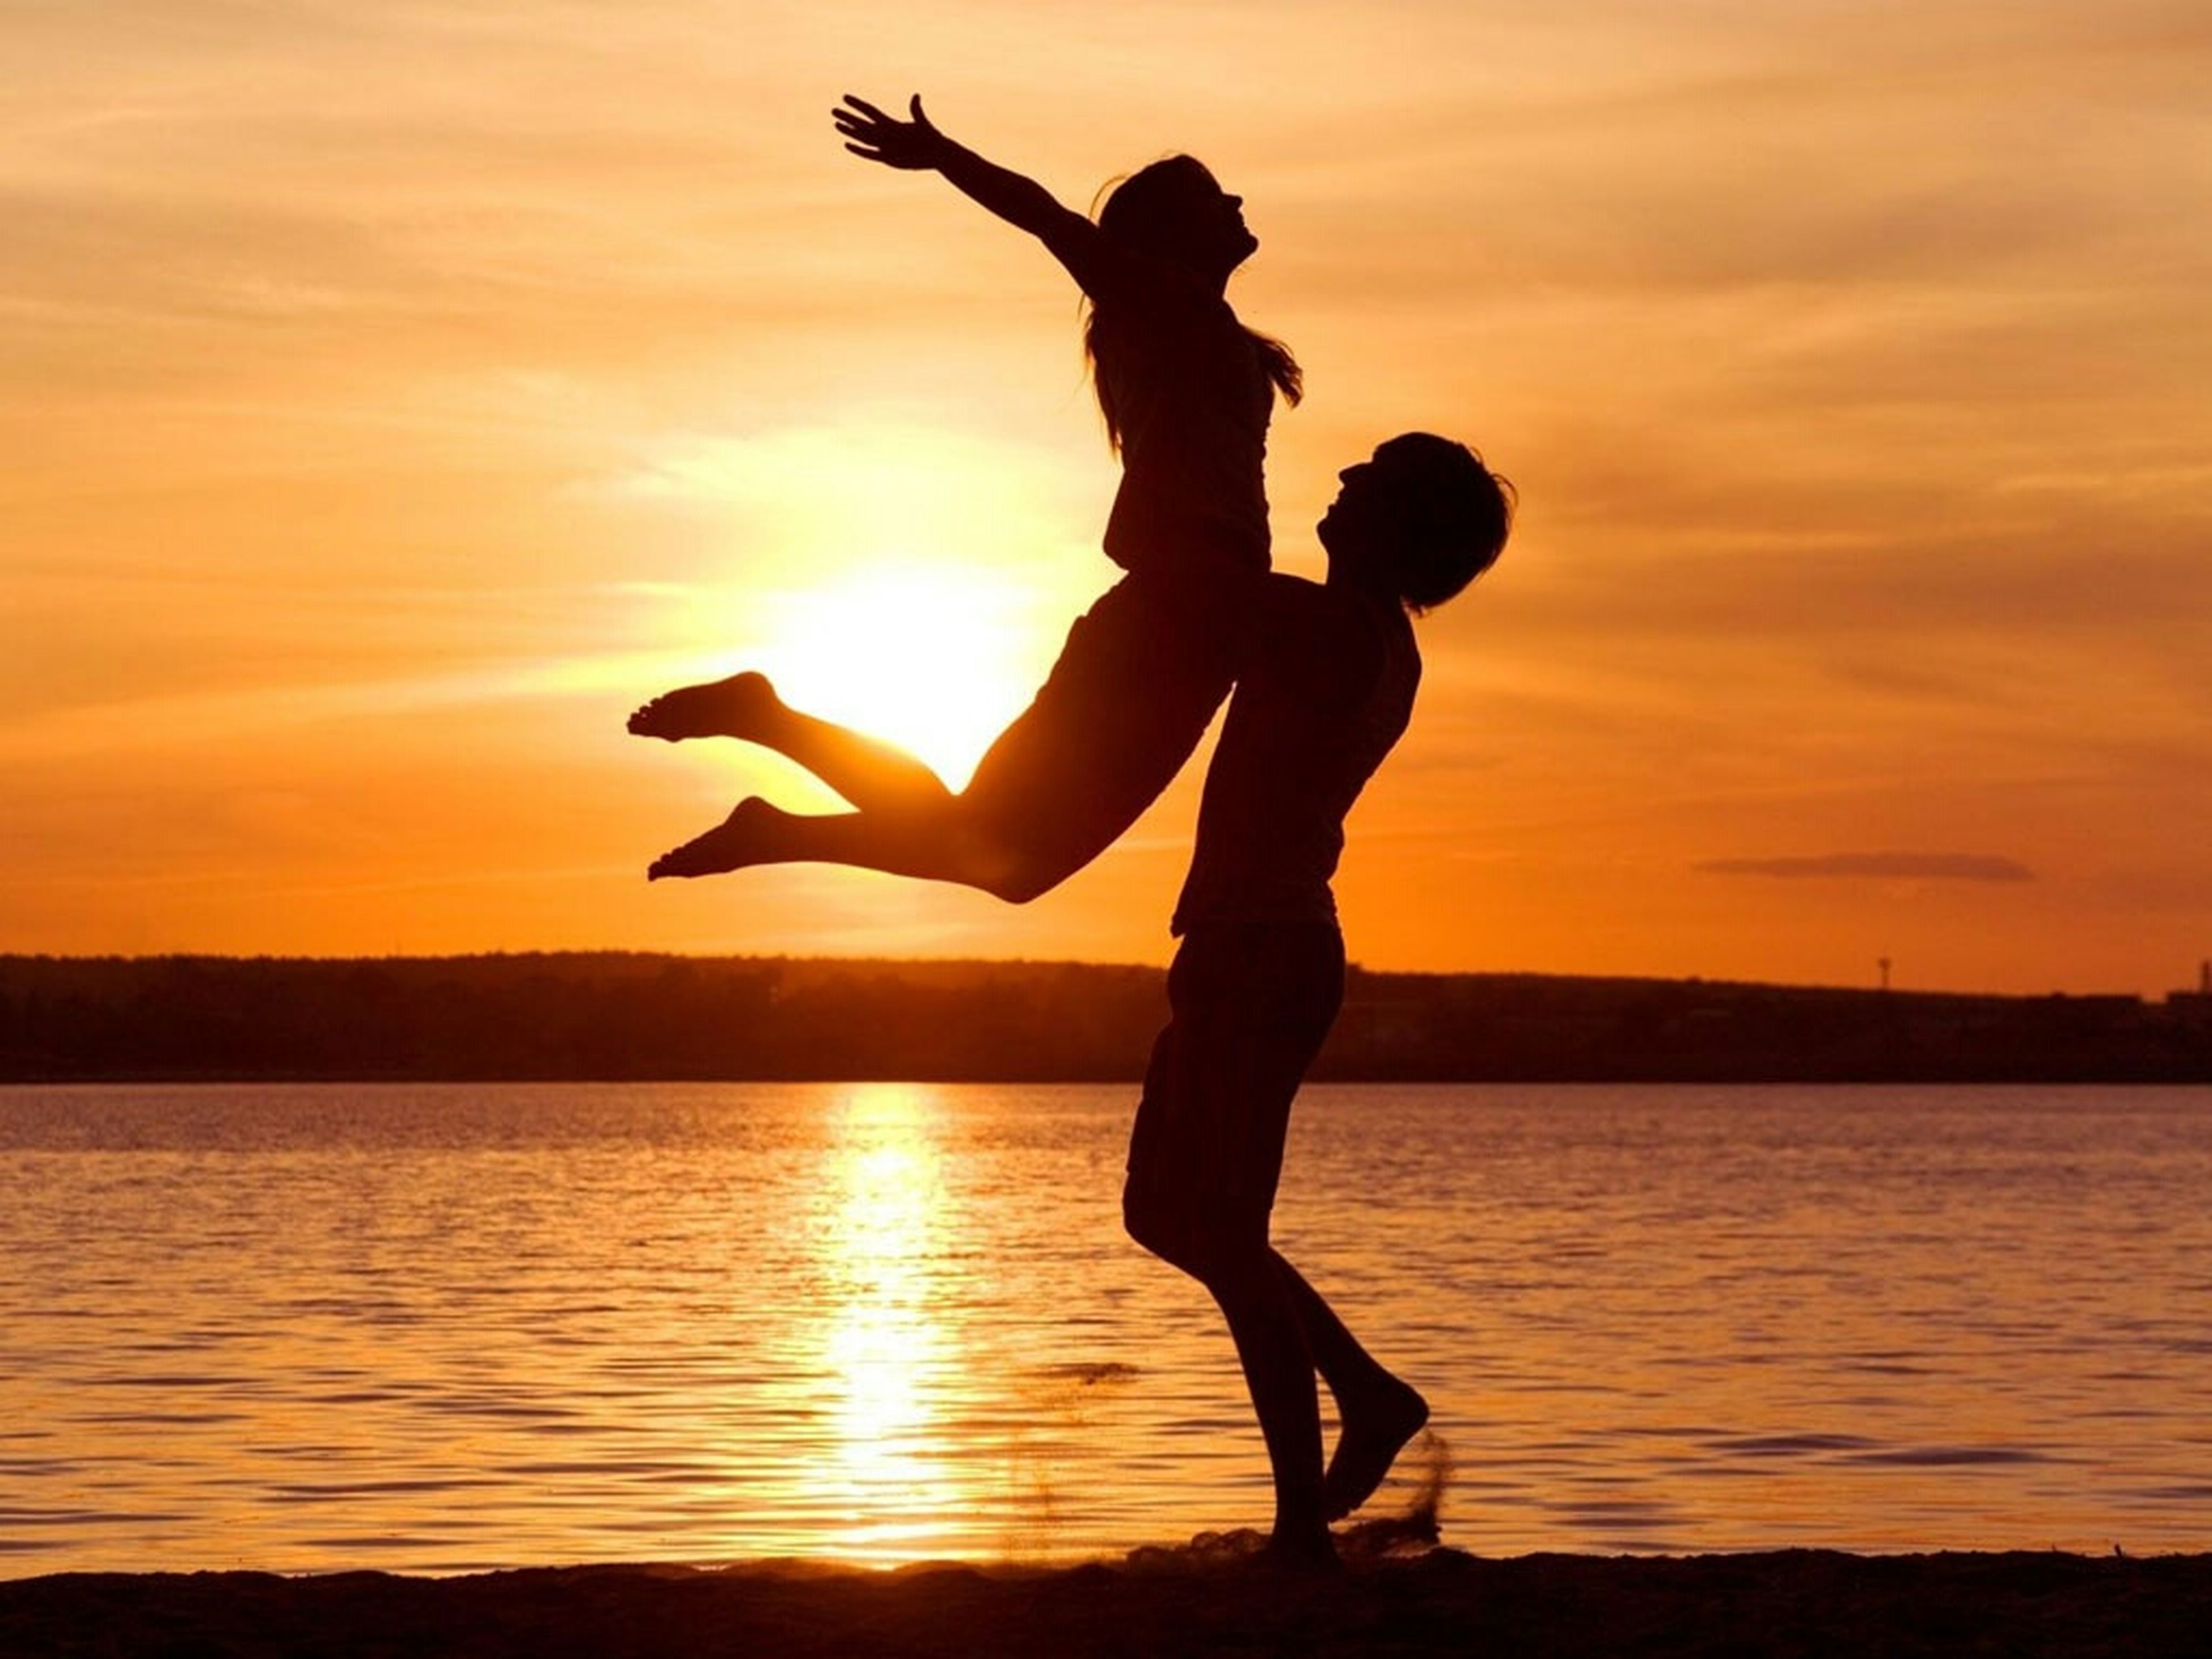 sunset, silhouette, orange color, water, sky, leisure activity, mid-air, sun, sea, lifestyles, jumping, full length, arms raised, scenics, beauty in nature, arms outstretched, nature, enjoyment